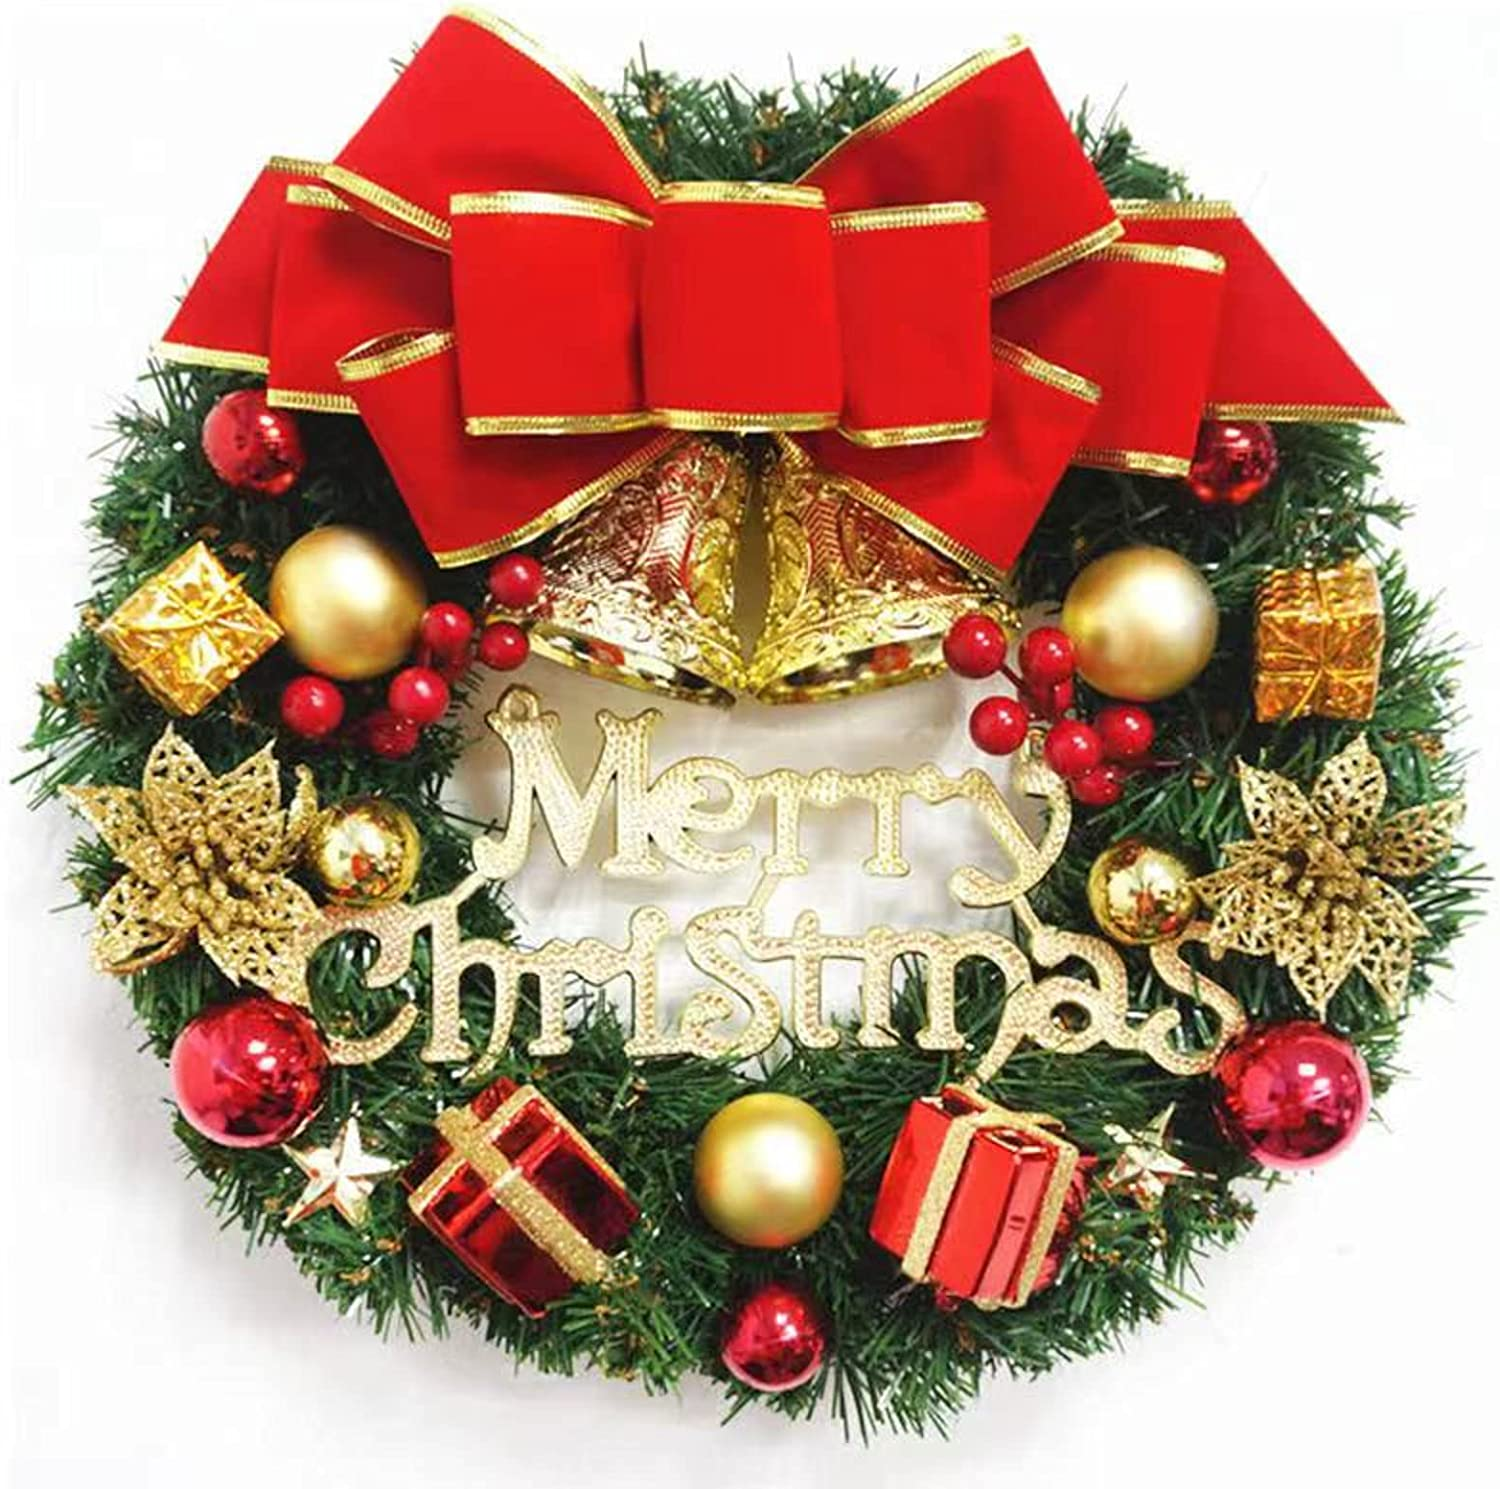 MNHGFD 12 Inch Christmas 2021 new Wreath Bowknot Merry Garland with In a popularity Bells